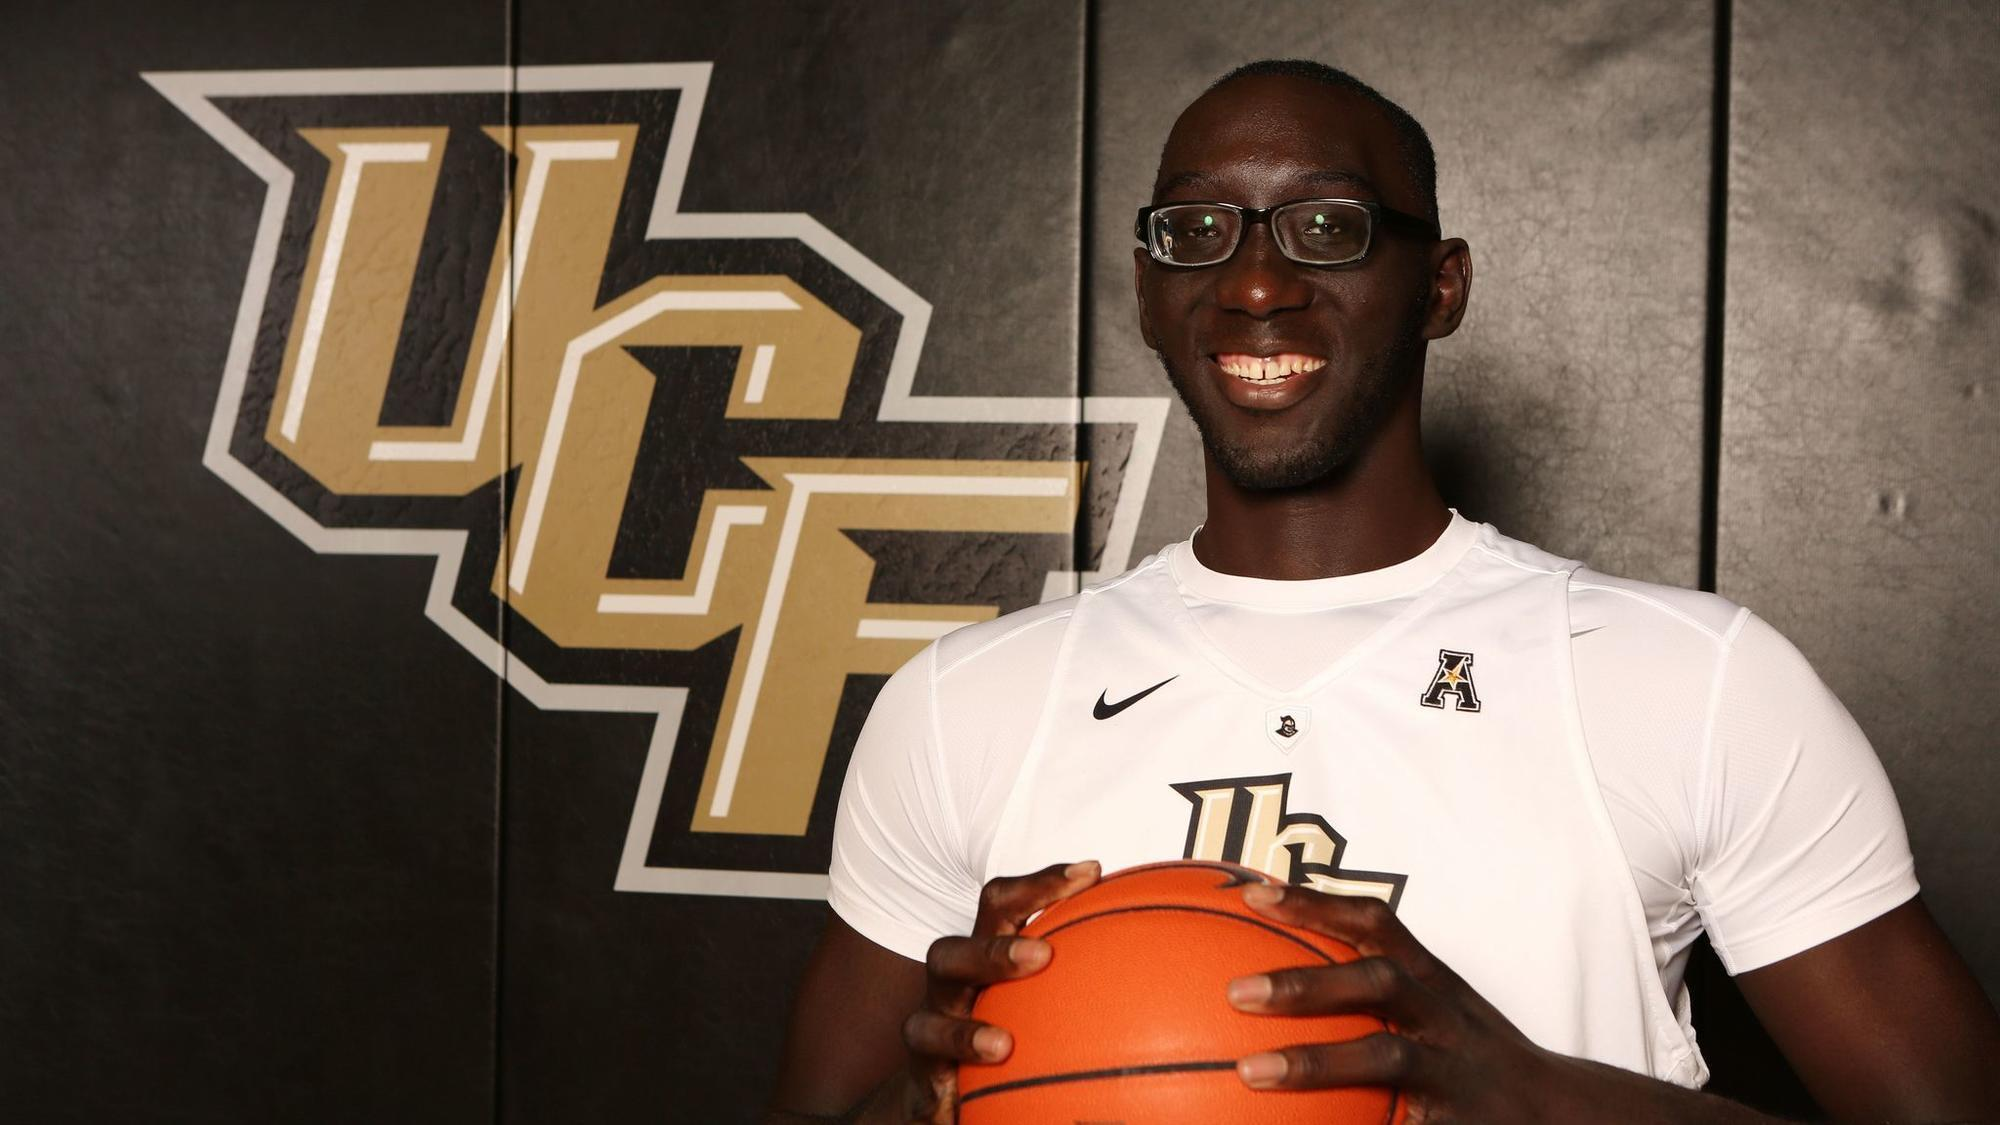 Tacko Fall is out for rest of UCF basketball season - Orlando Sentinel